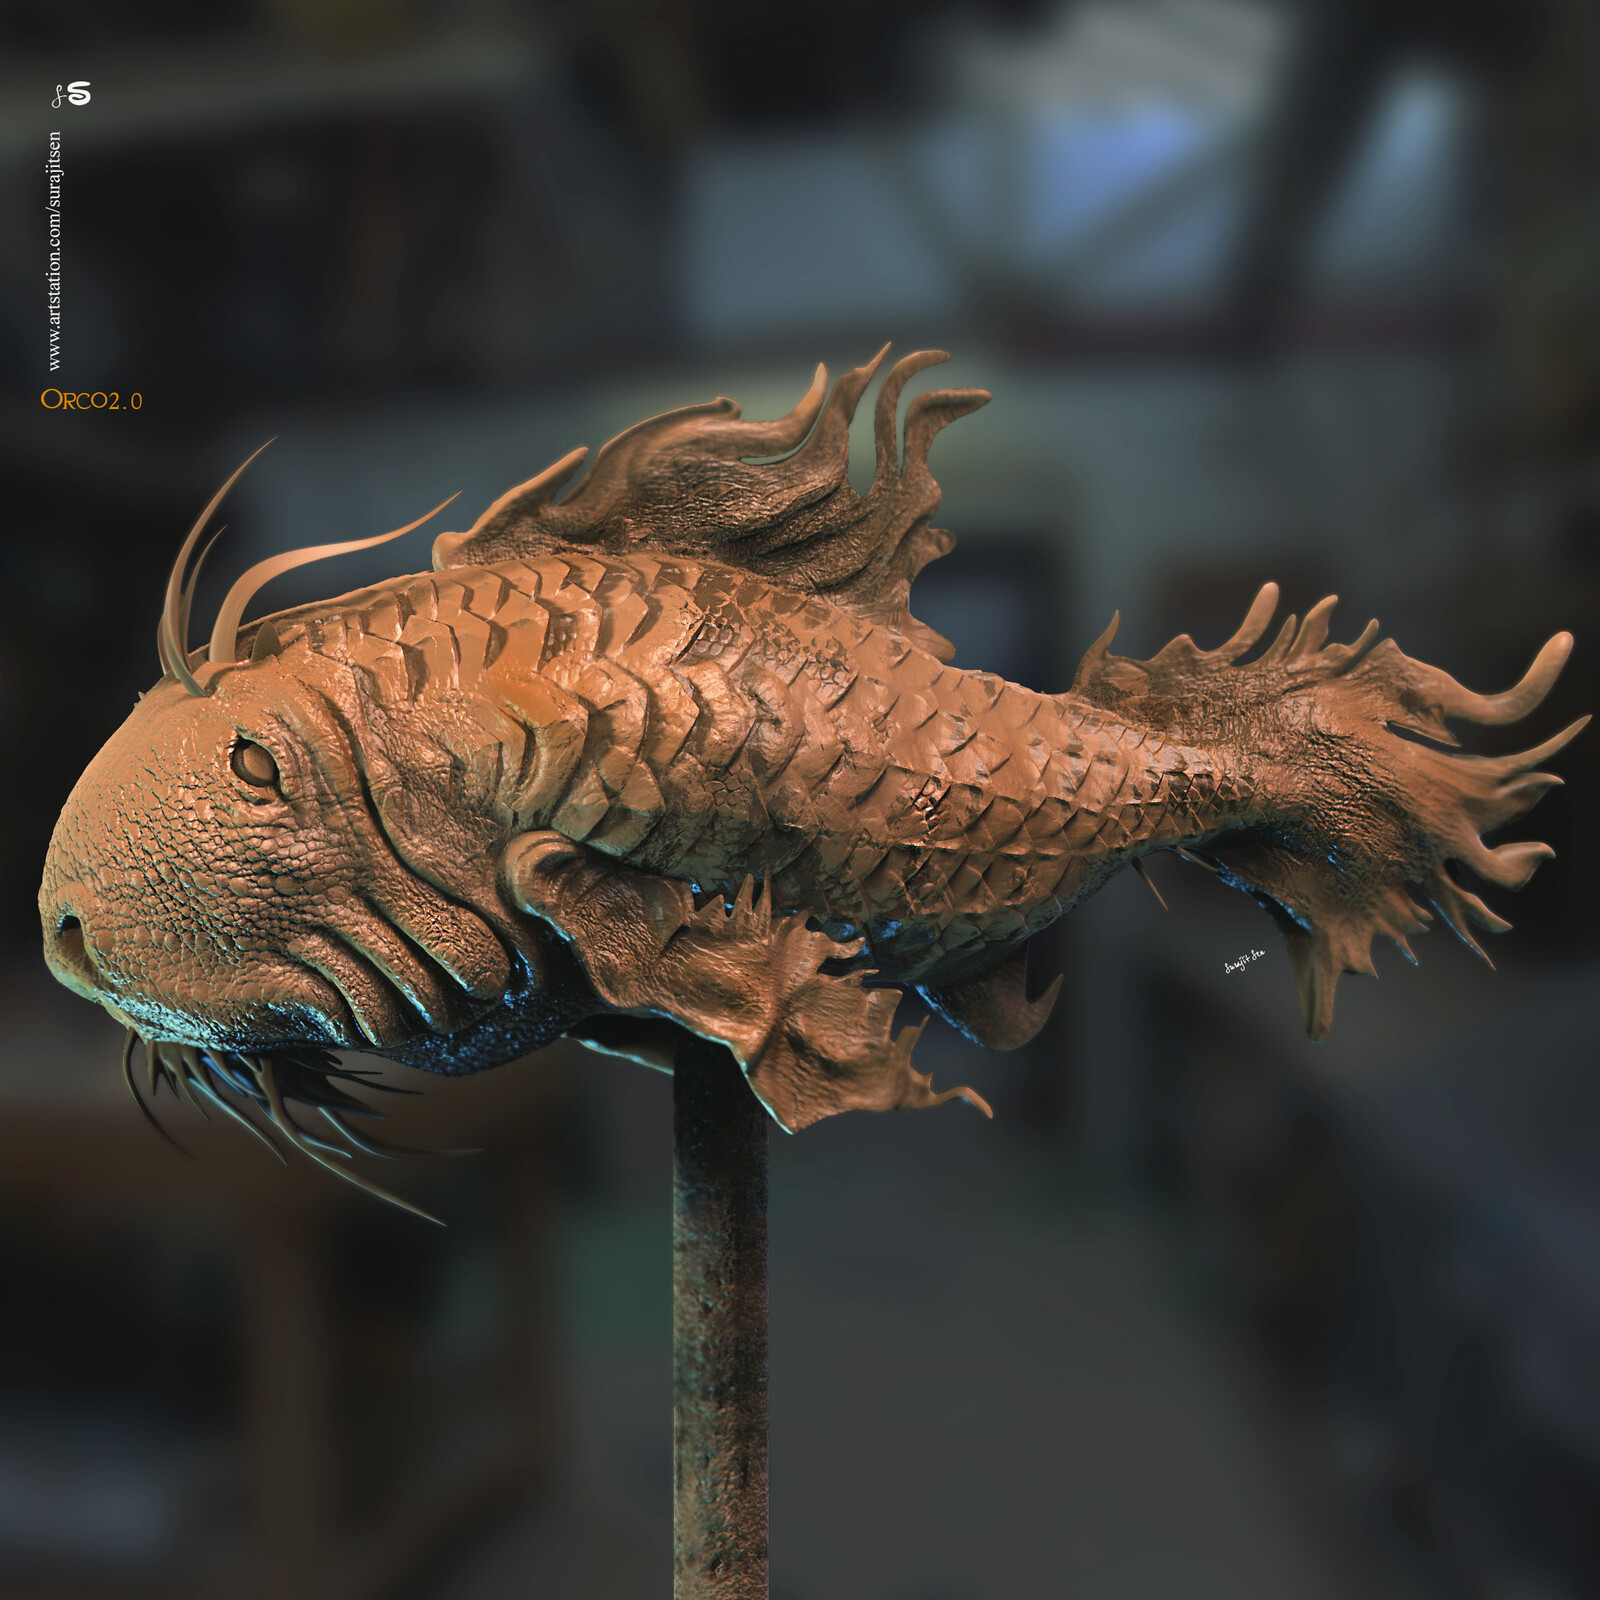 Orco2.0 Digital Sculpture Wish to share  Background music- #hanszimmermusic